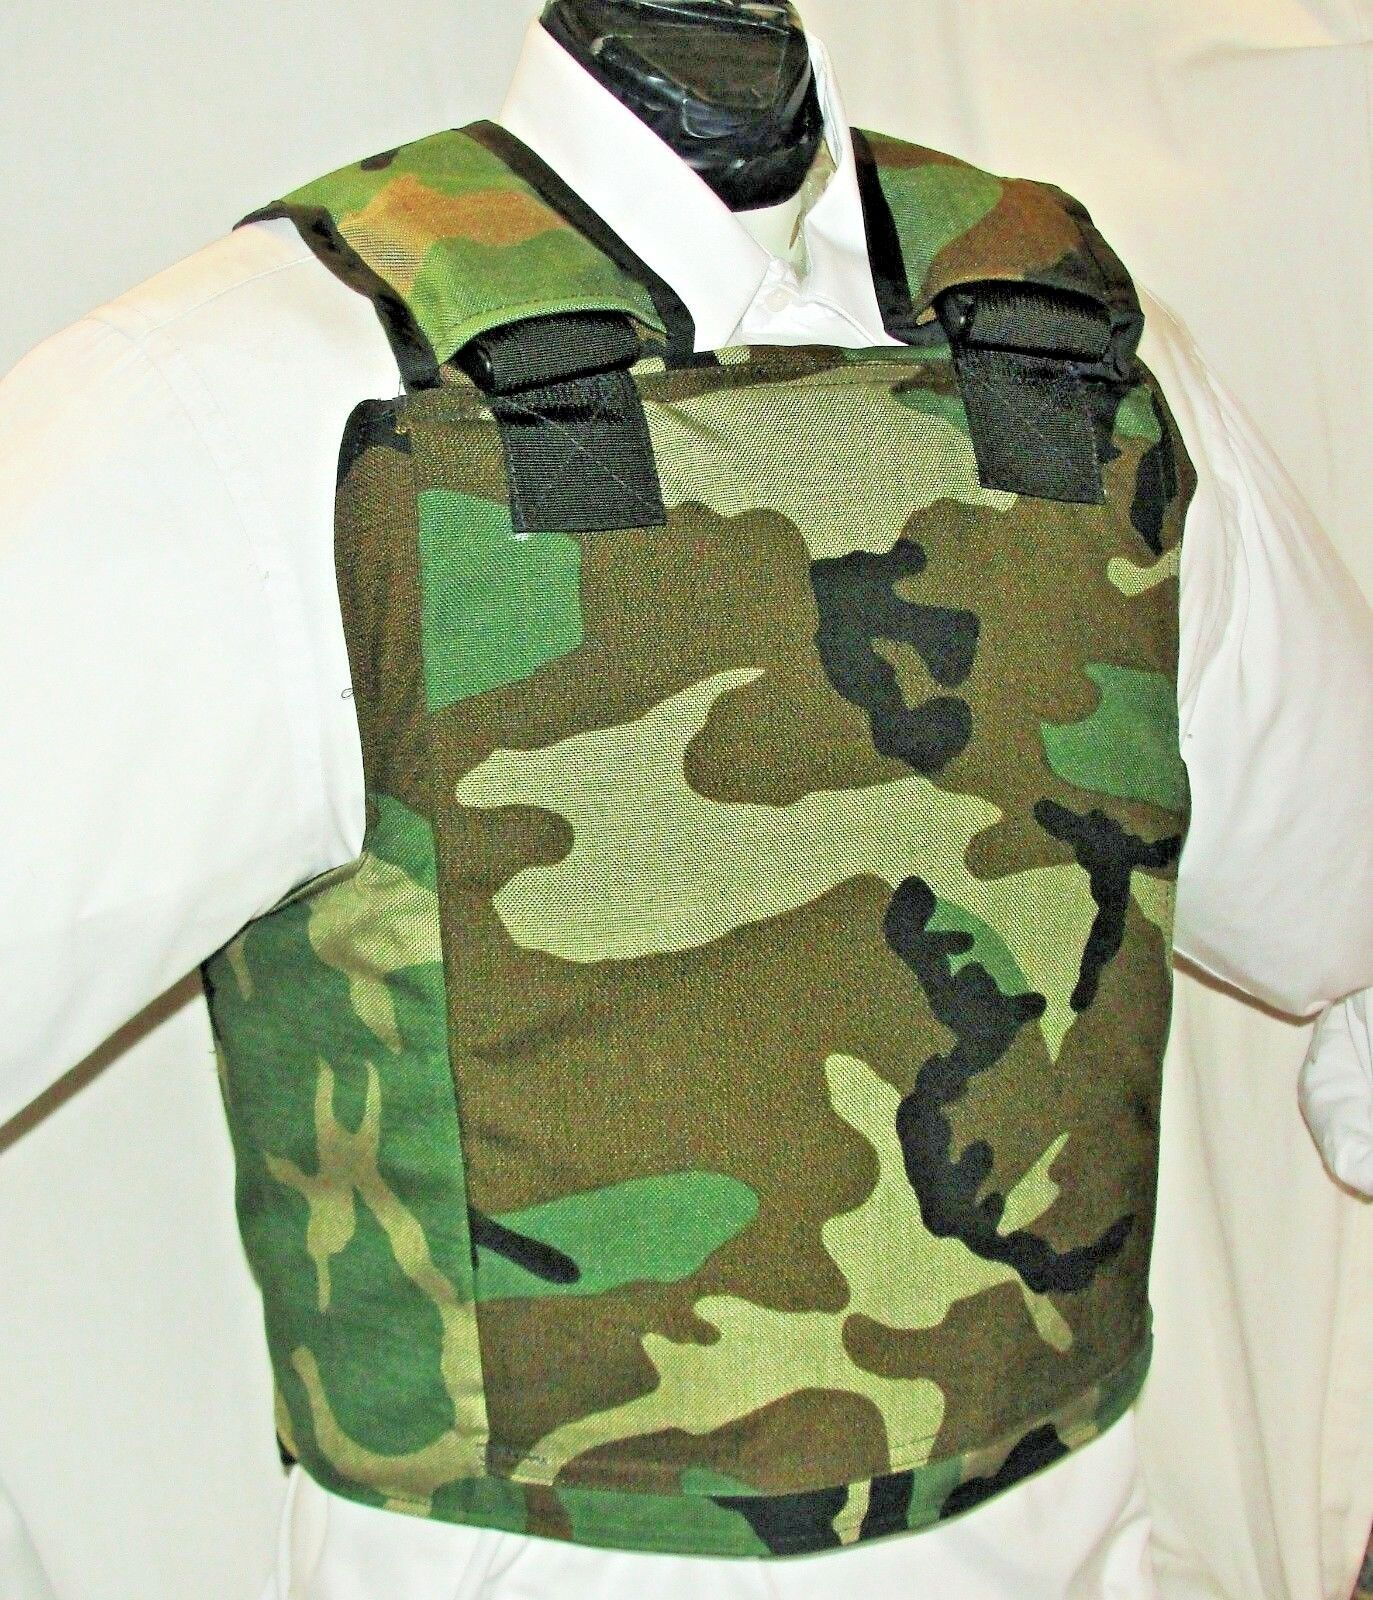 New Large IIIA   Plate Carrier Body Armor BulletProof Vest with Inserts  timeless classic